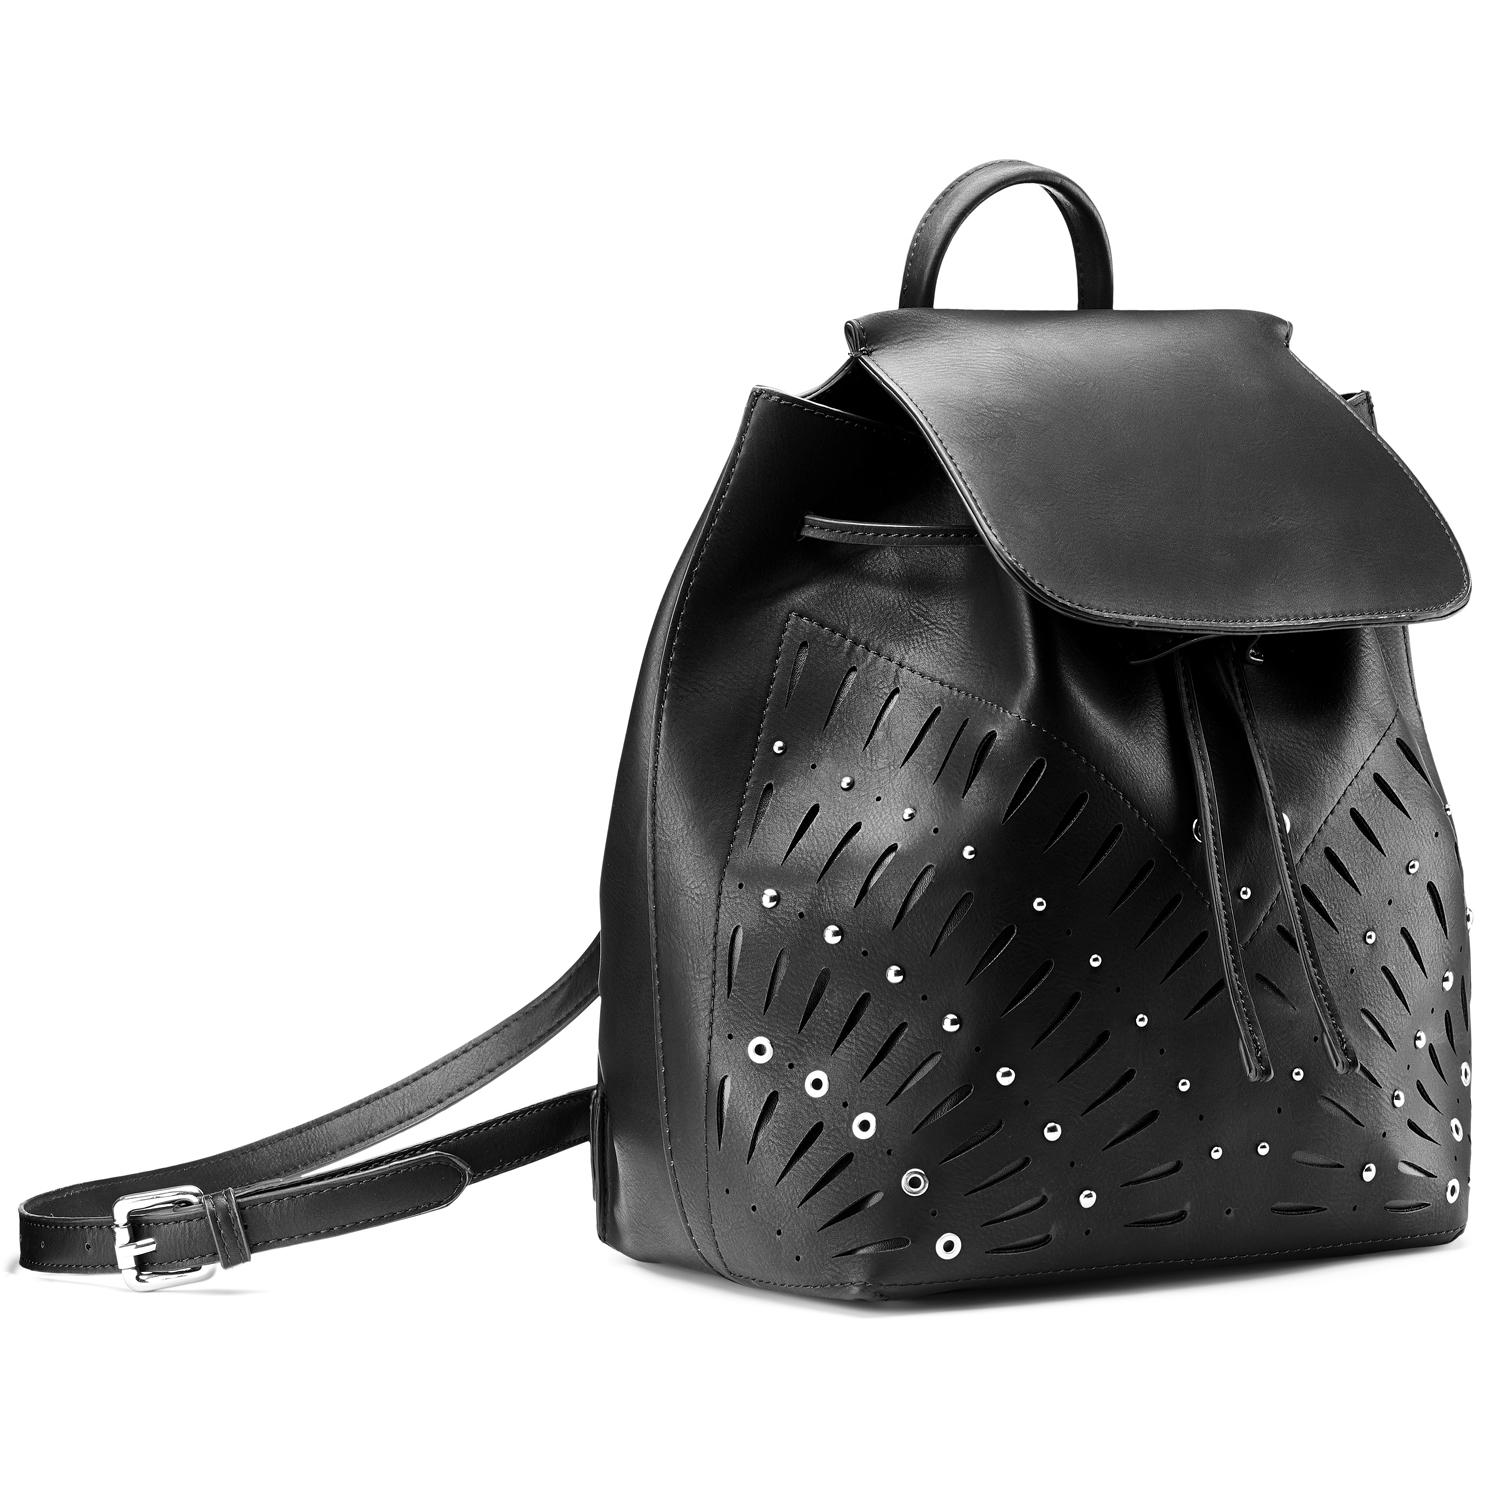 Backpack bata, Noir, 961-6223 - 13